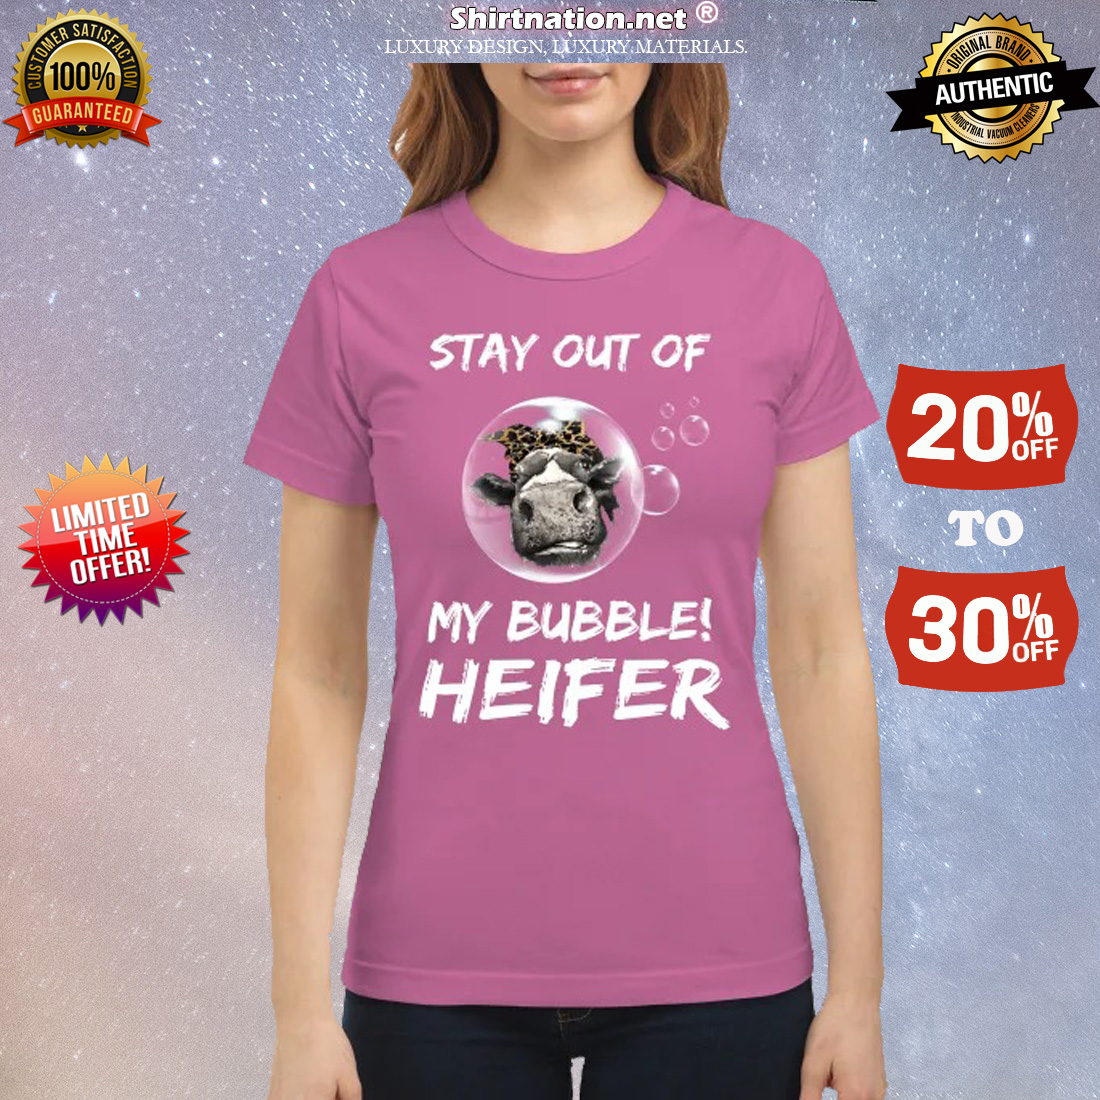 Stay out of my bubble heifer classic shirt